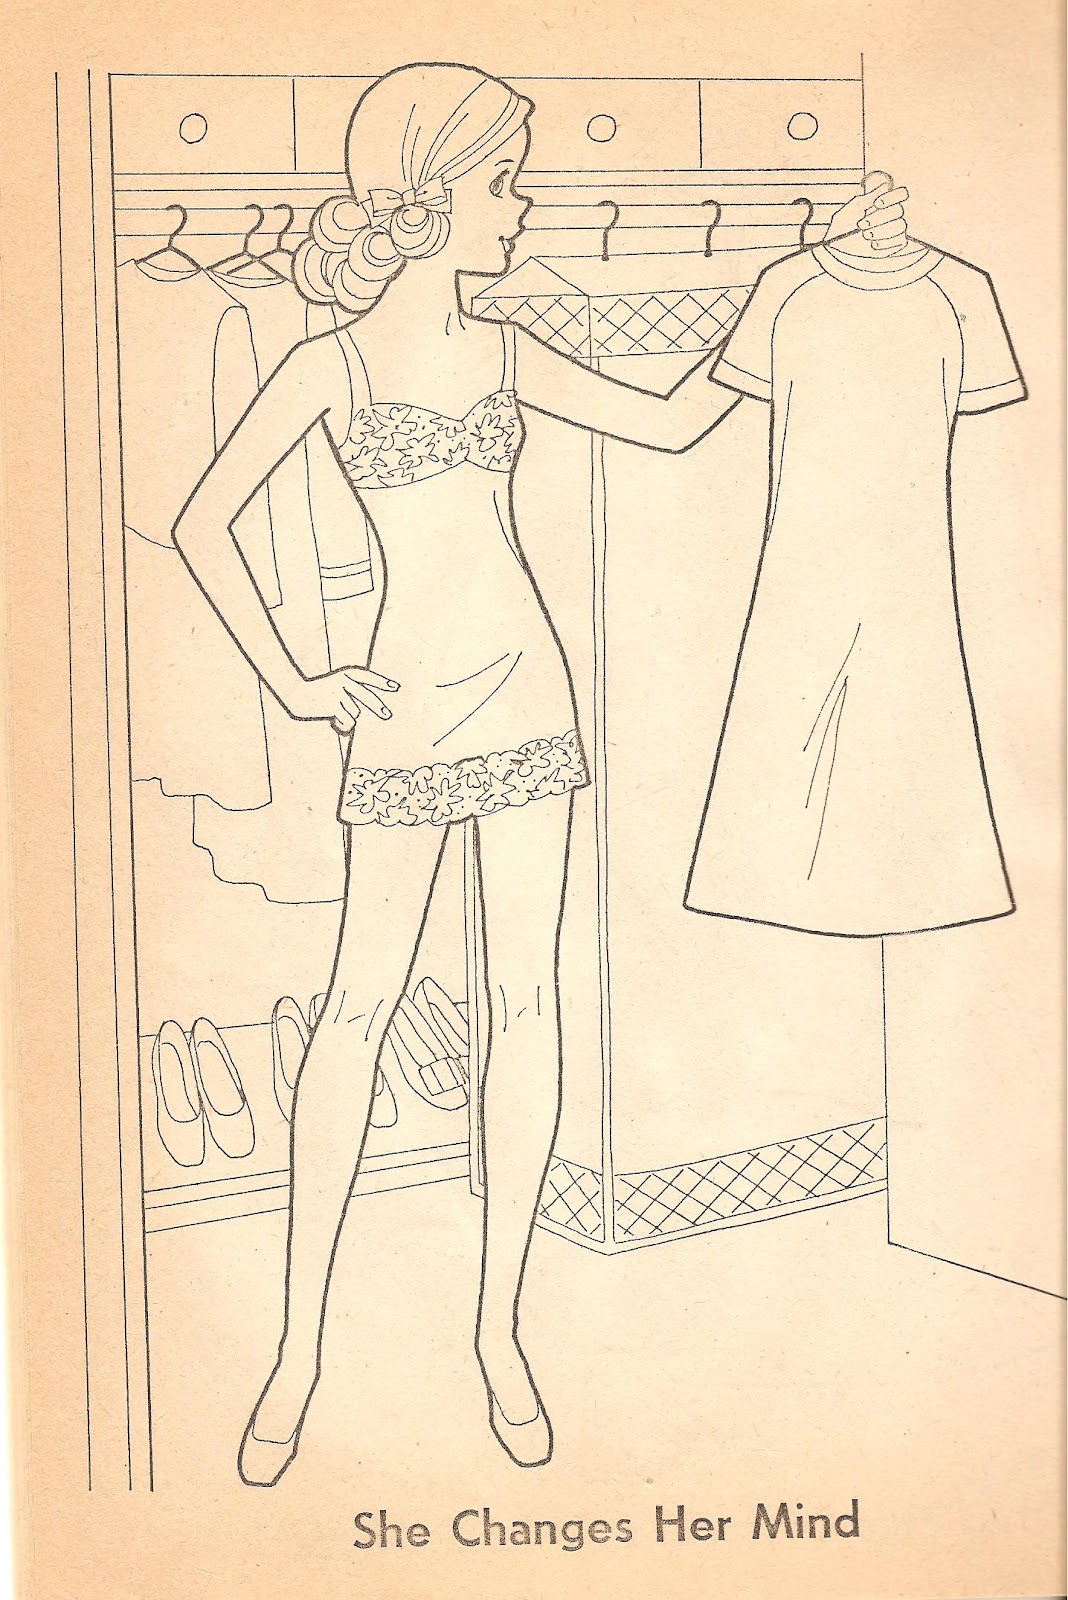 A Paper Doll From Barbie Quick Curl Coloring Book Copyright 1975 Looks Very Young In This But I Like The Art Did Not Scan All Pages